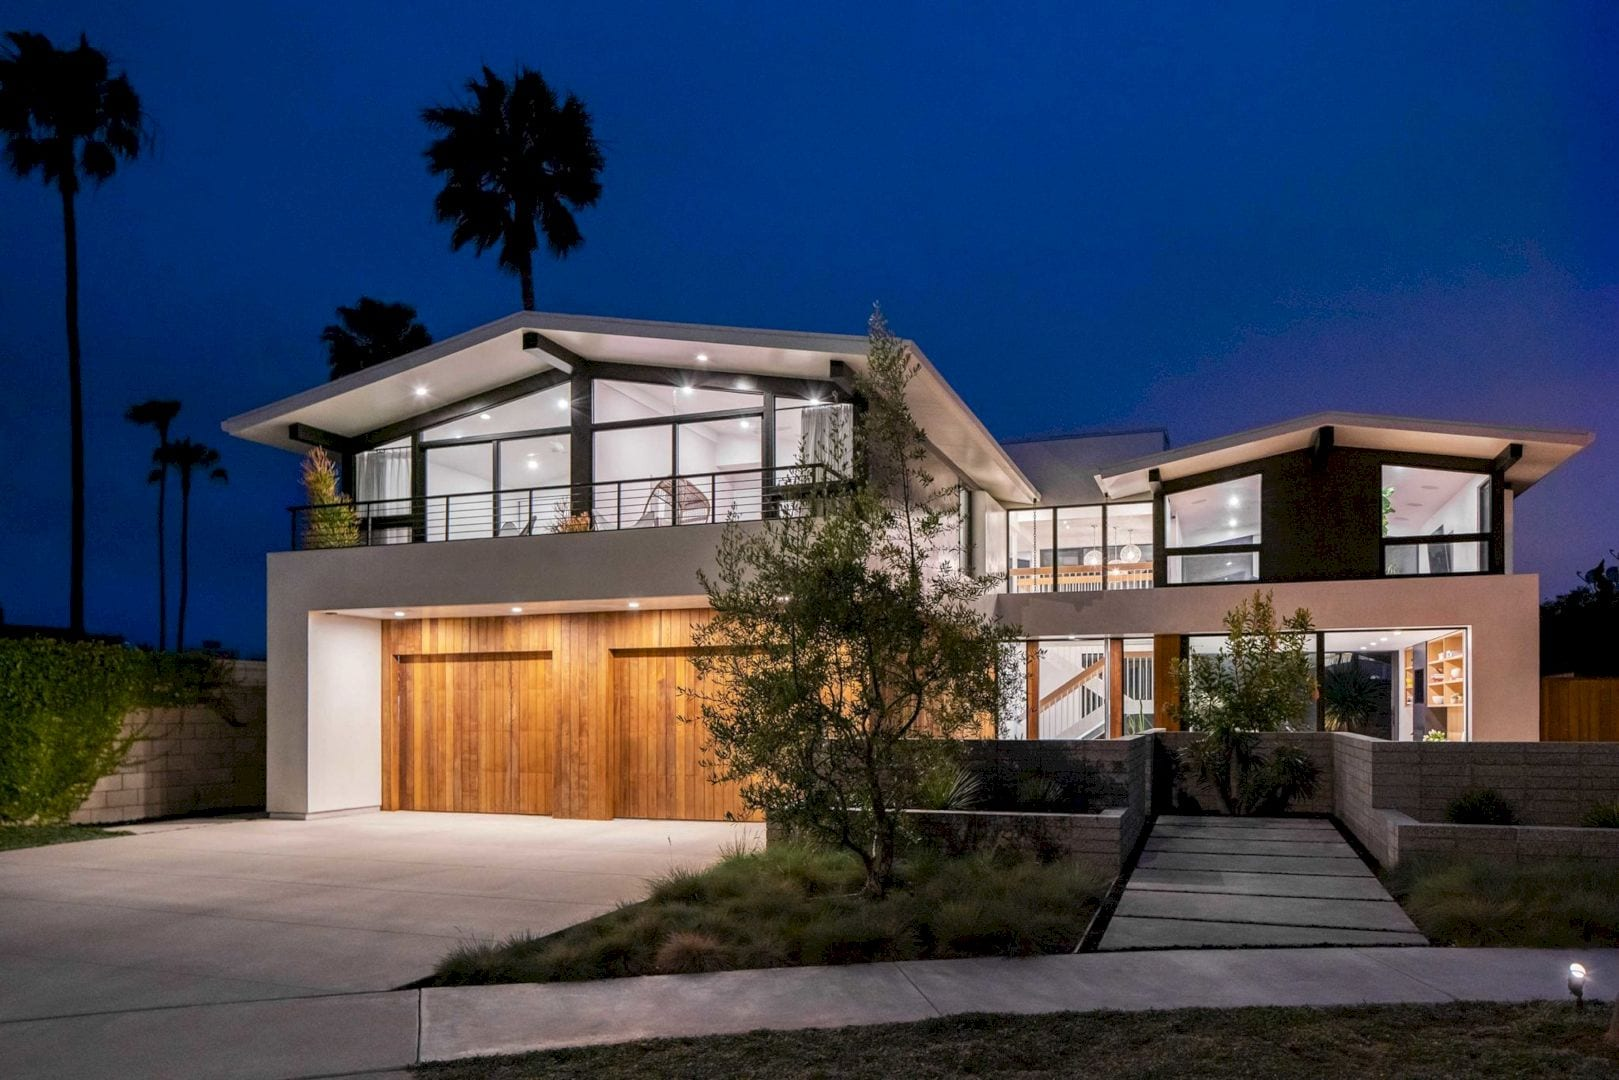 Phelps Residence By Assembledge 7